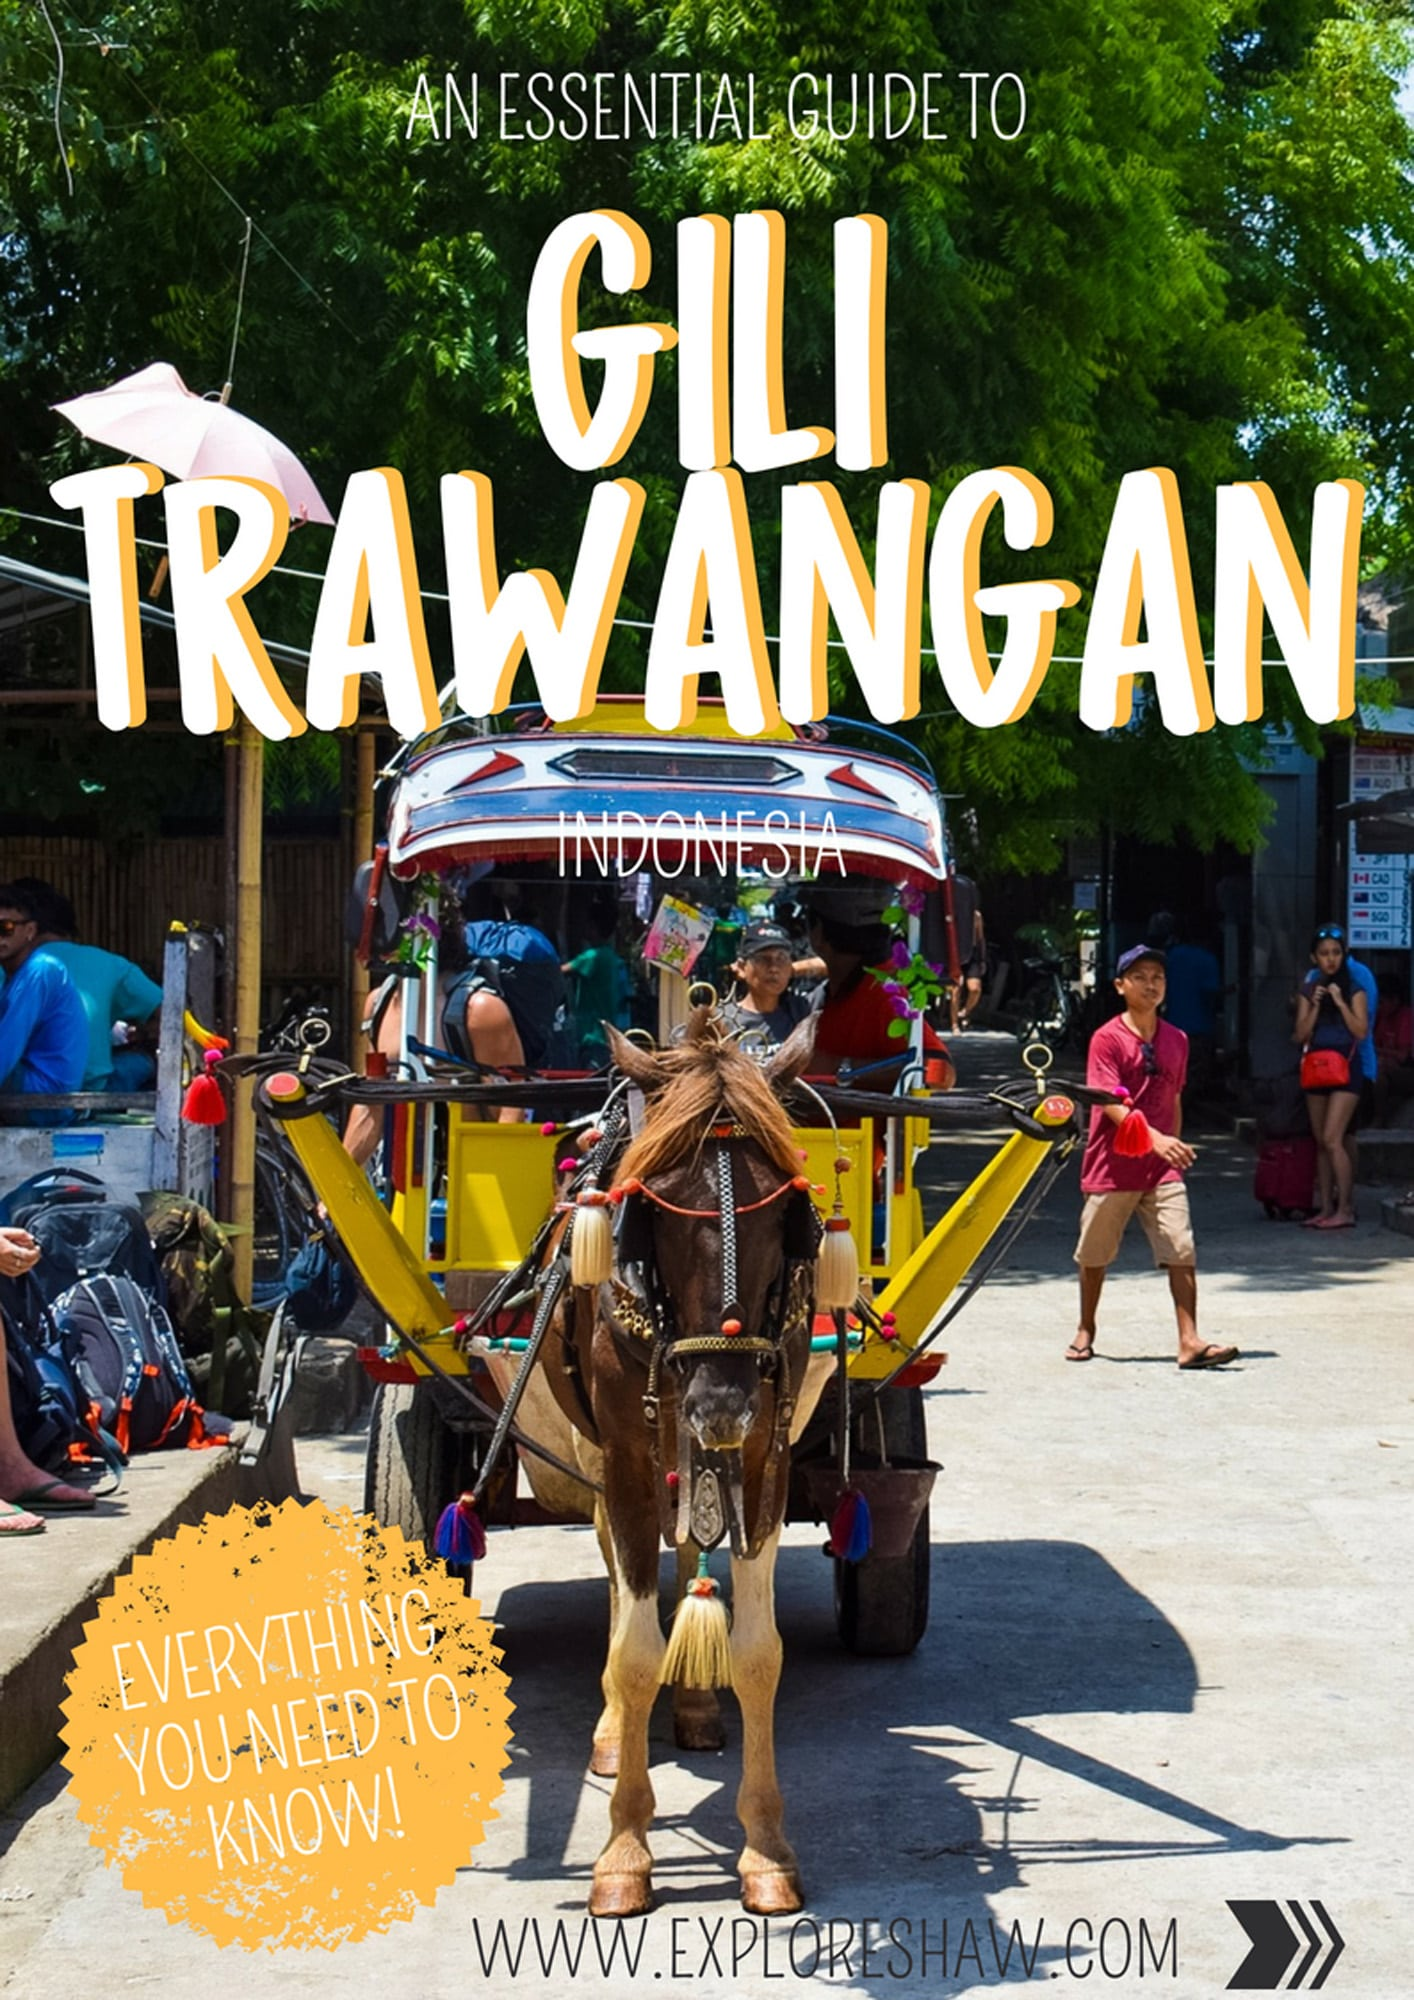 A Complete Guide To Gili Trawangan - Everything you need to know for your first visit to this little Lombok island. #Indonesia #Lombok #GiliTrawangan